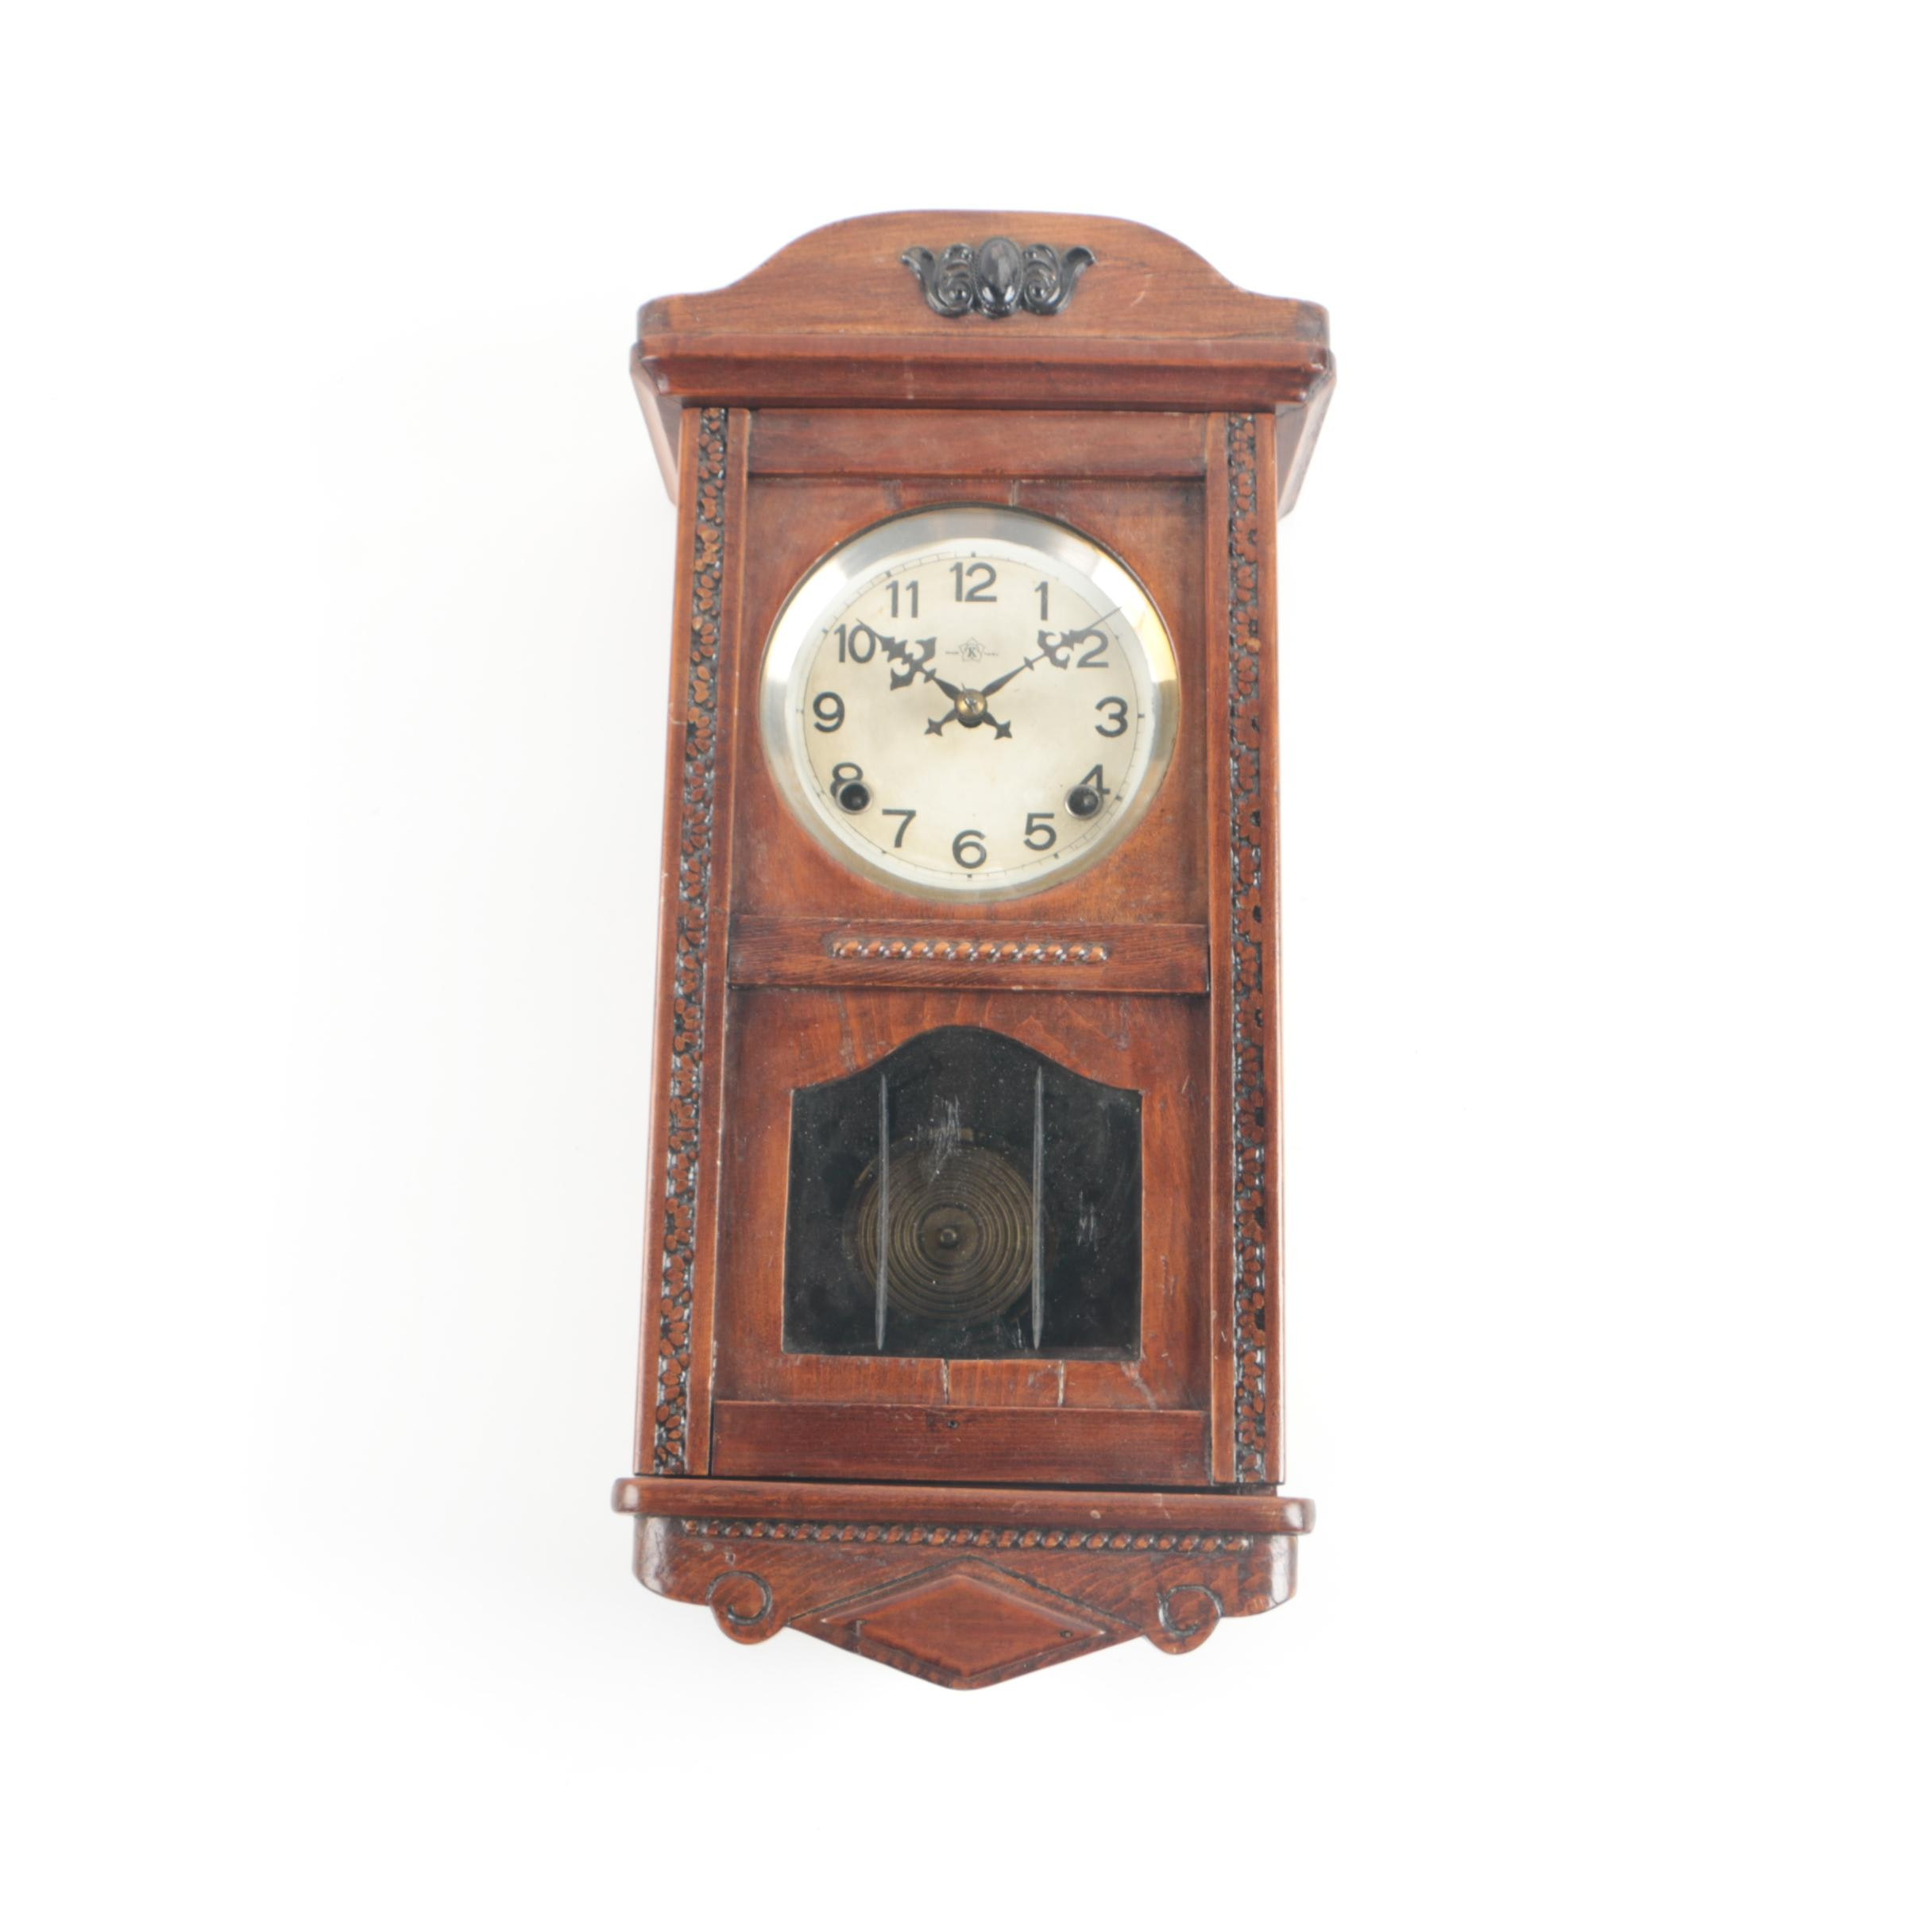 Vintage Arts and Crafts Style Wood Wall Clock